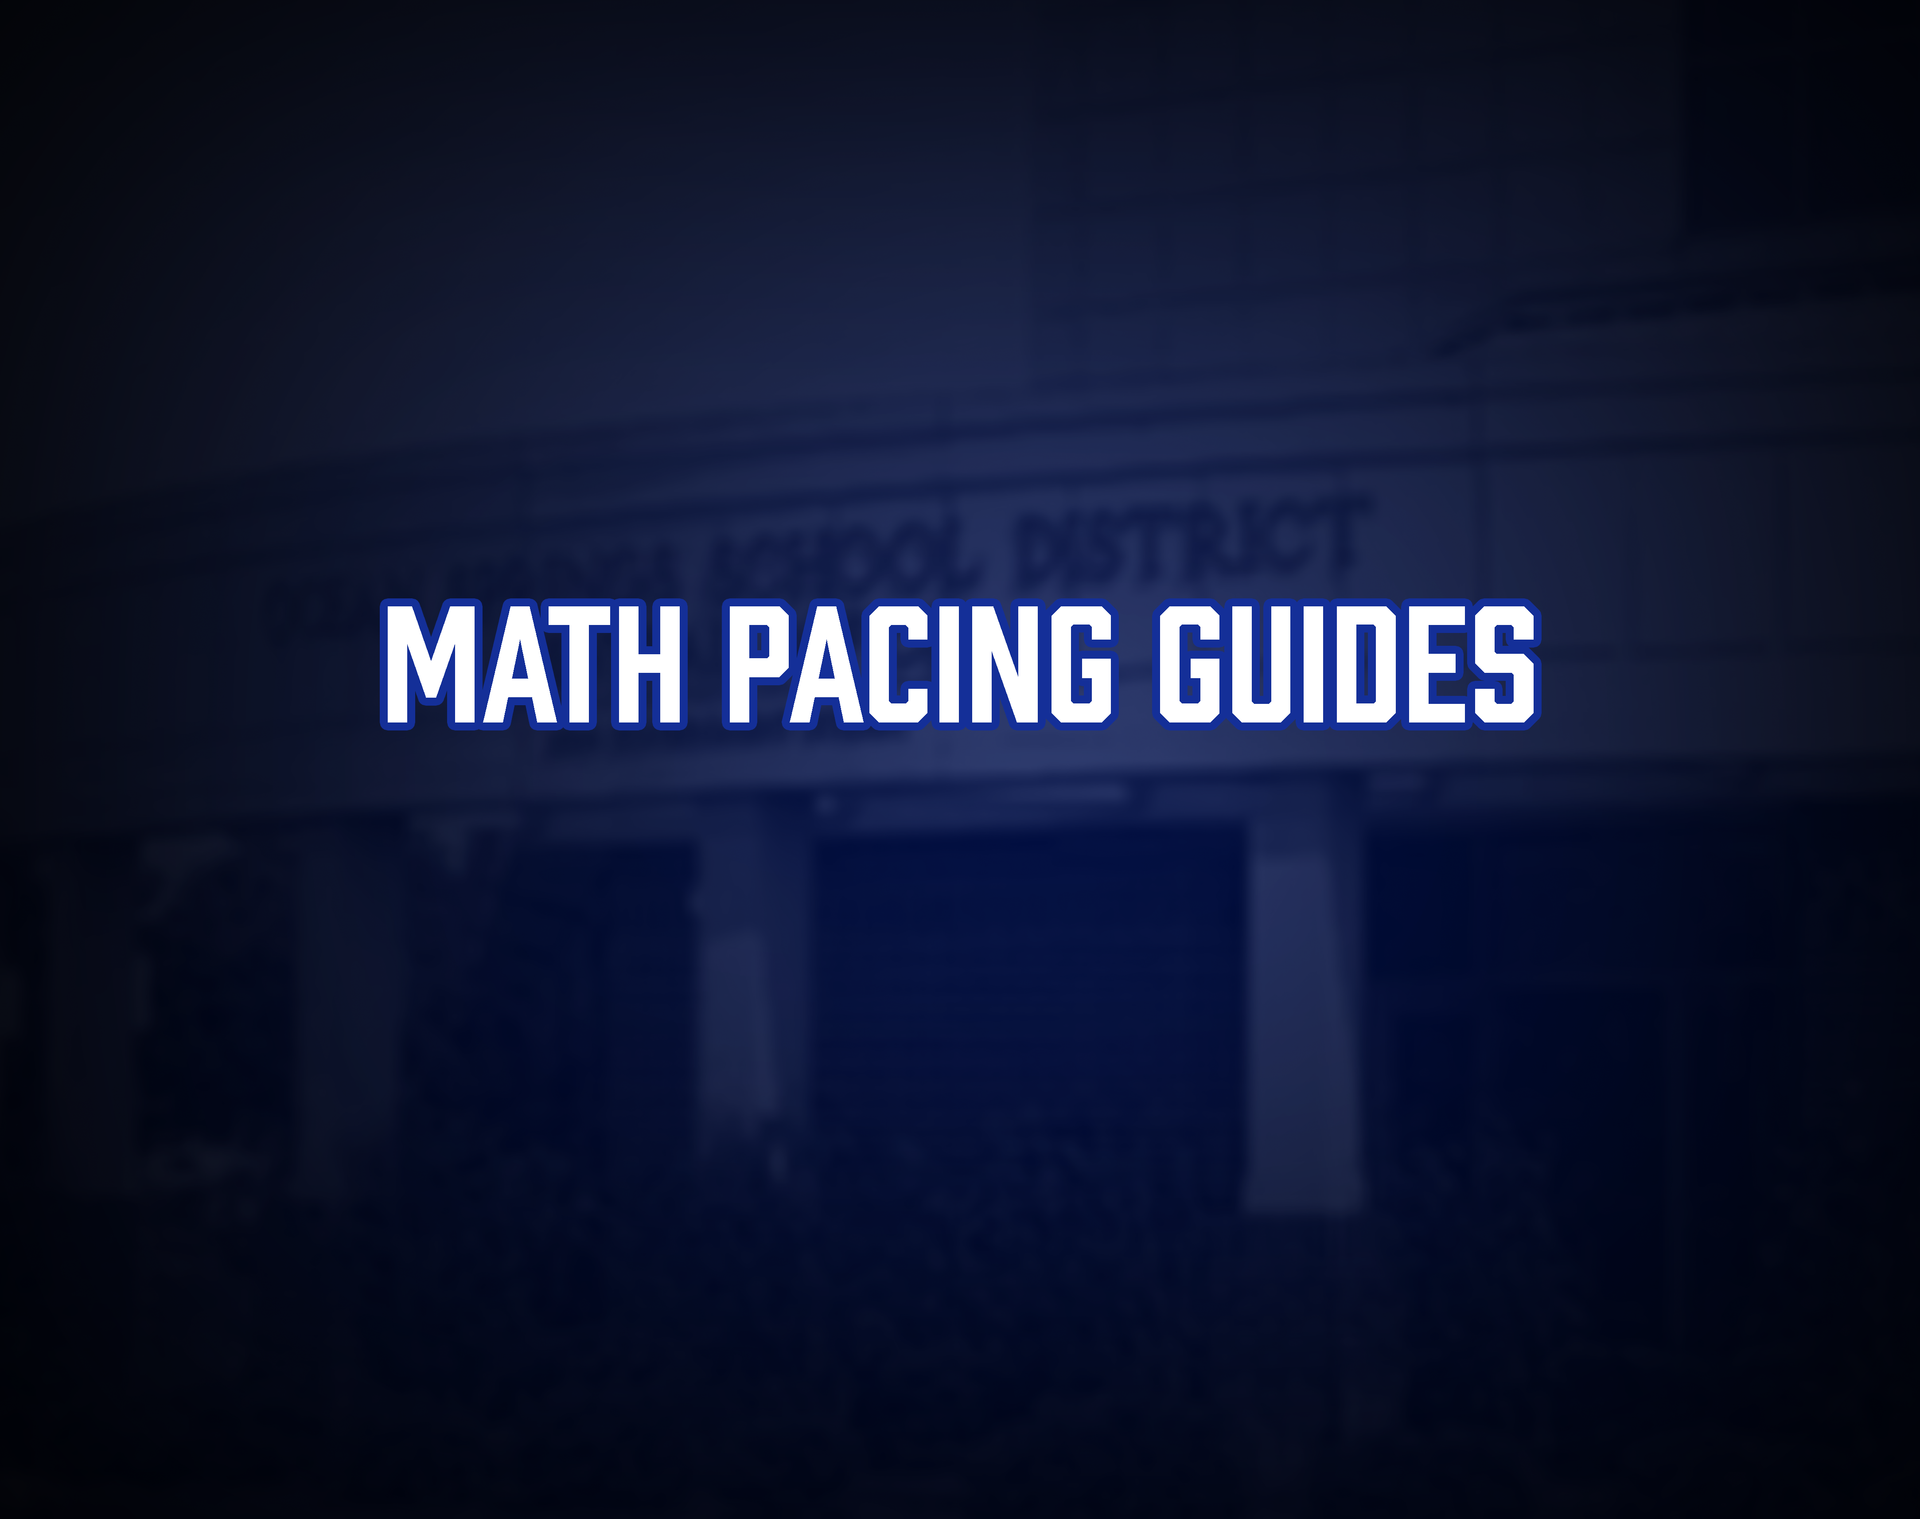 Math Pacing Guides Tile